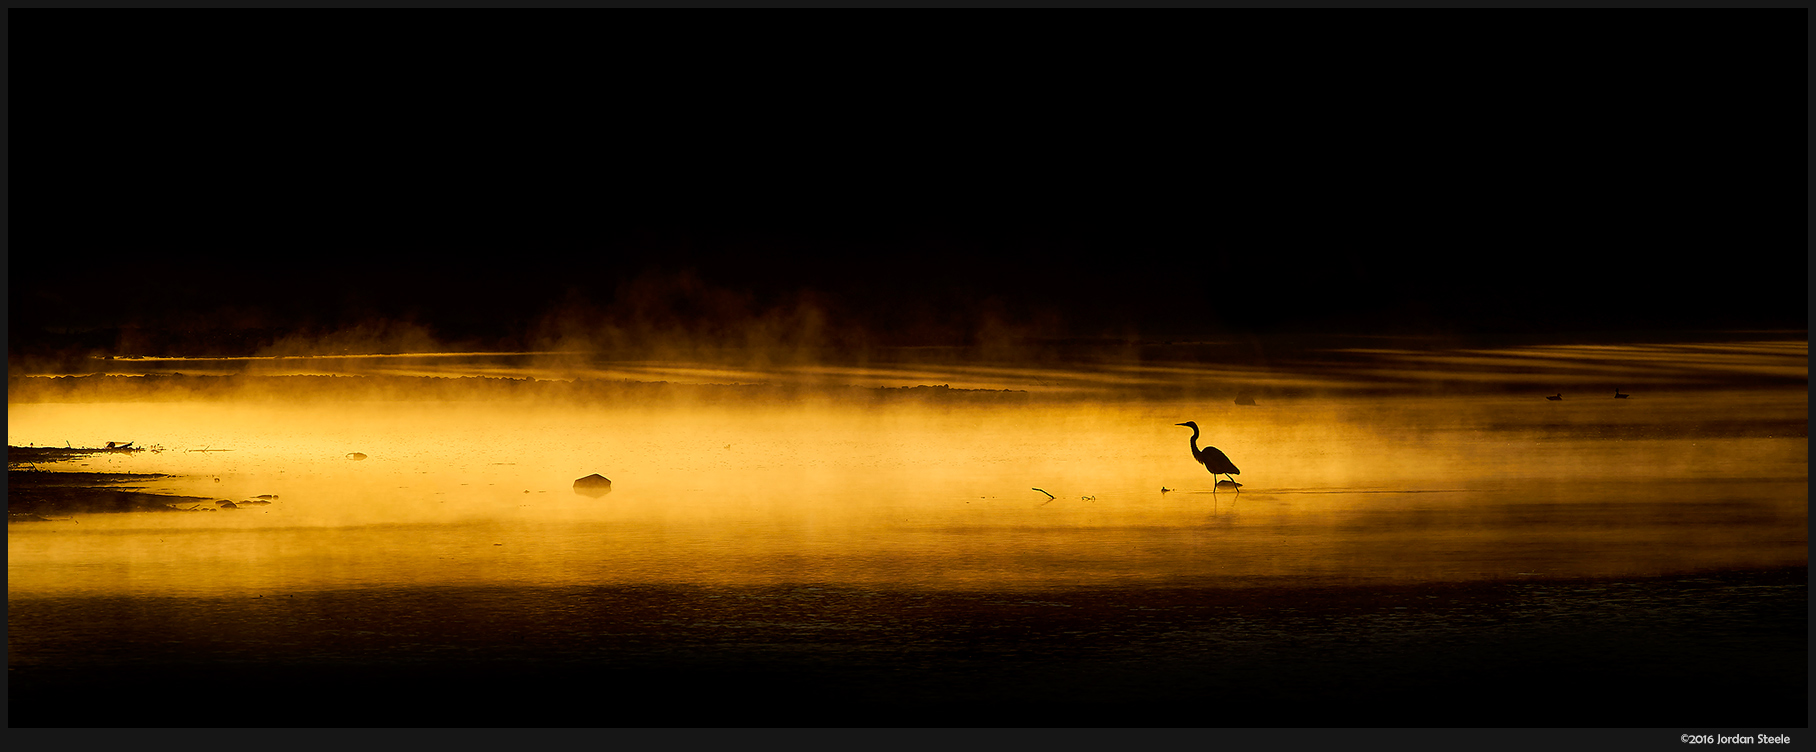 Egret in the Golden Mist – Sony A7 II with Canon EF 70-200mm f/4L + 1.4x TC @ 280mm, f/11, ISO 100 (click to enlarge)